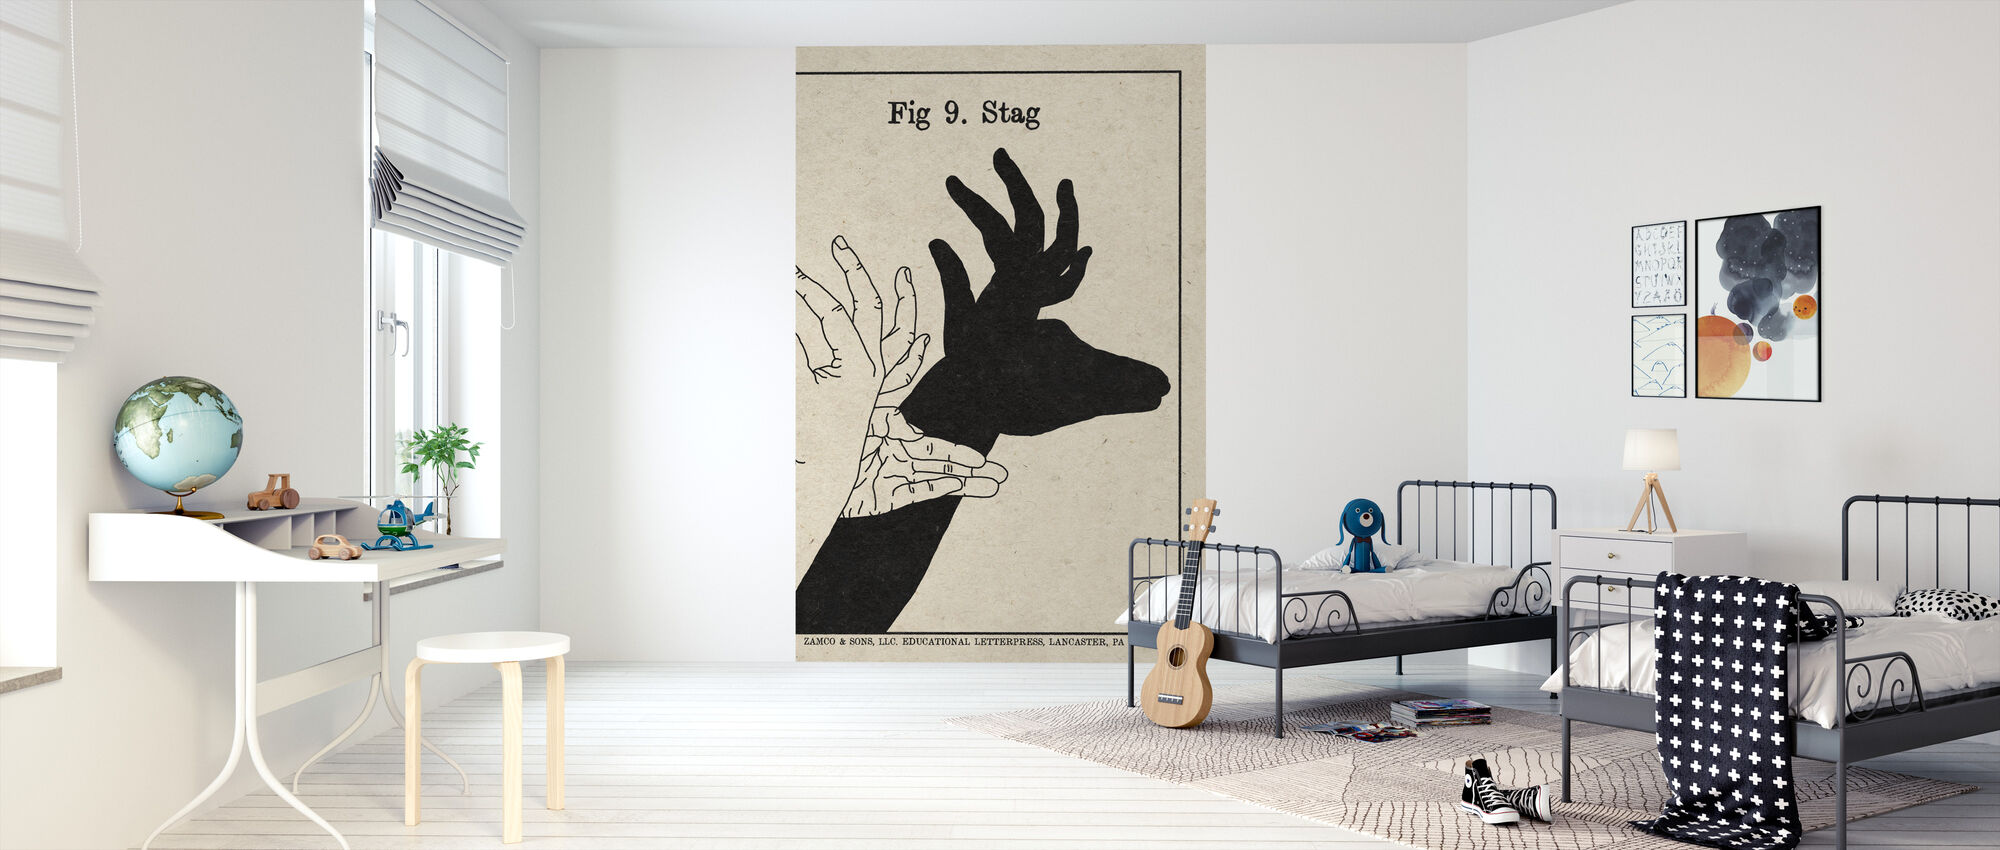 The Art of Shadows - Stag - Wallpaper - Kids Room